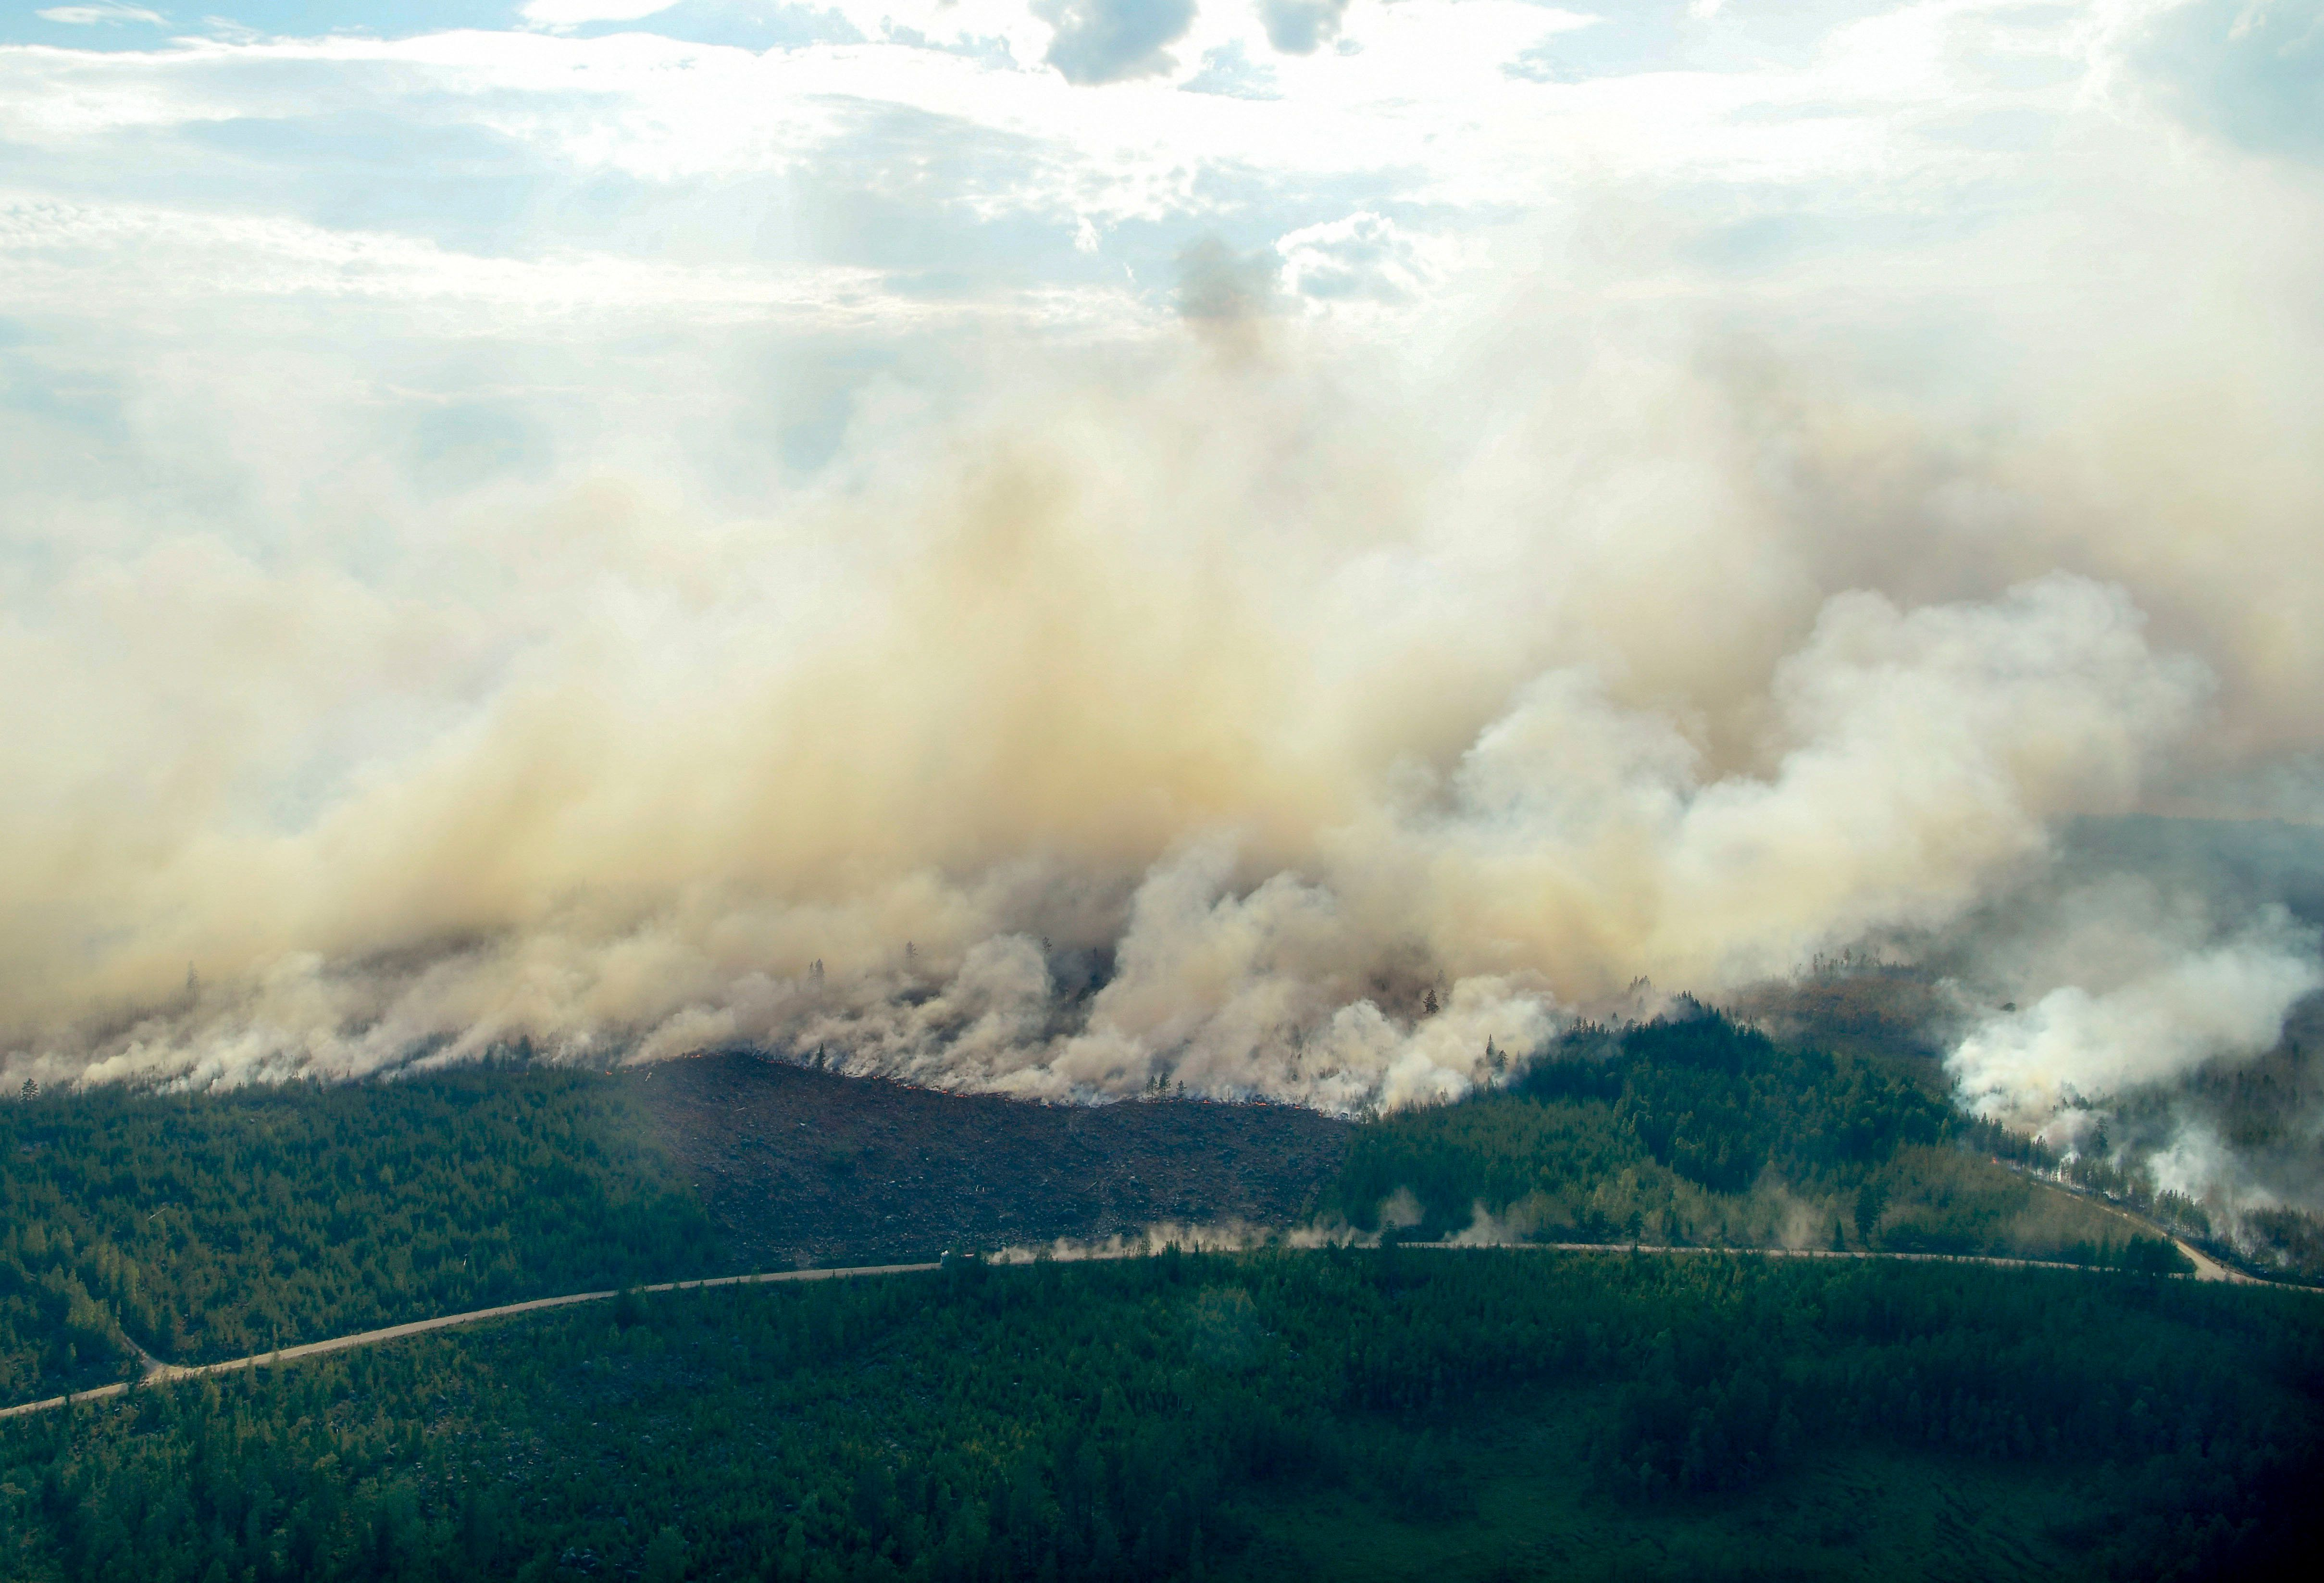 Forest fires burning near Ljusdal, Sweden on July 18, 2018.